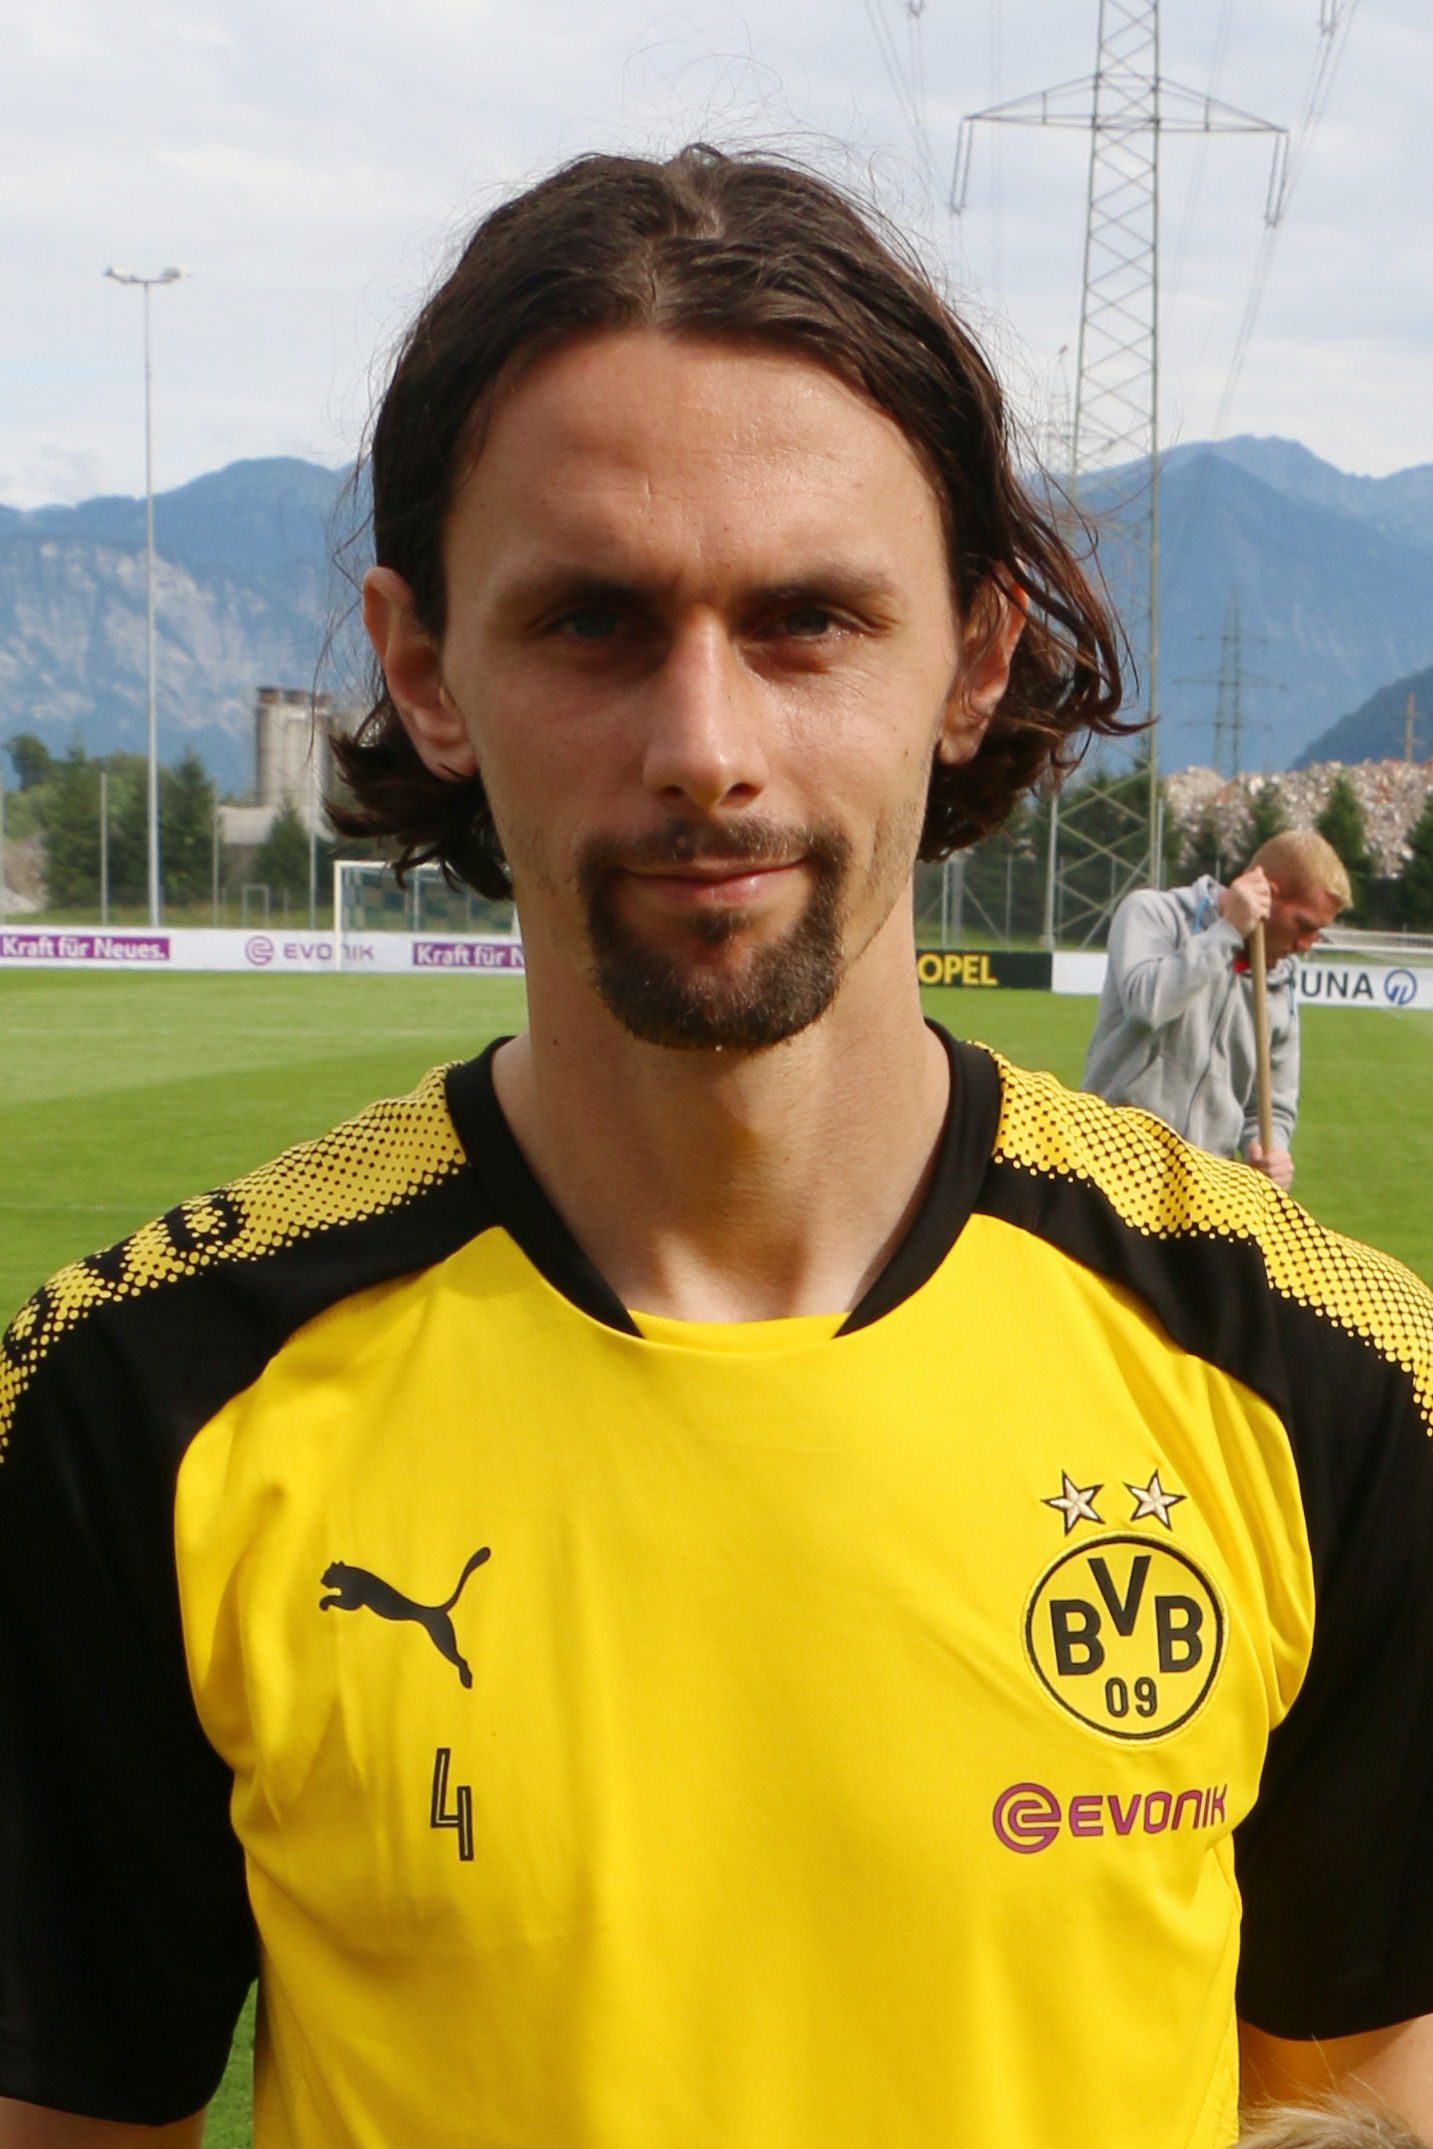 The 29-year old son of father Željko and mother Svjetlana Neven Subotić in 2018 photo. Neven Subotić earned a  million dollar salary - leaving the net worth at 30.4 million in 2018